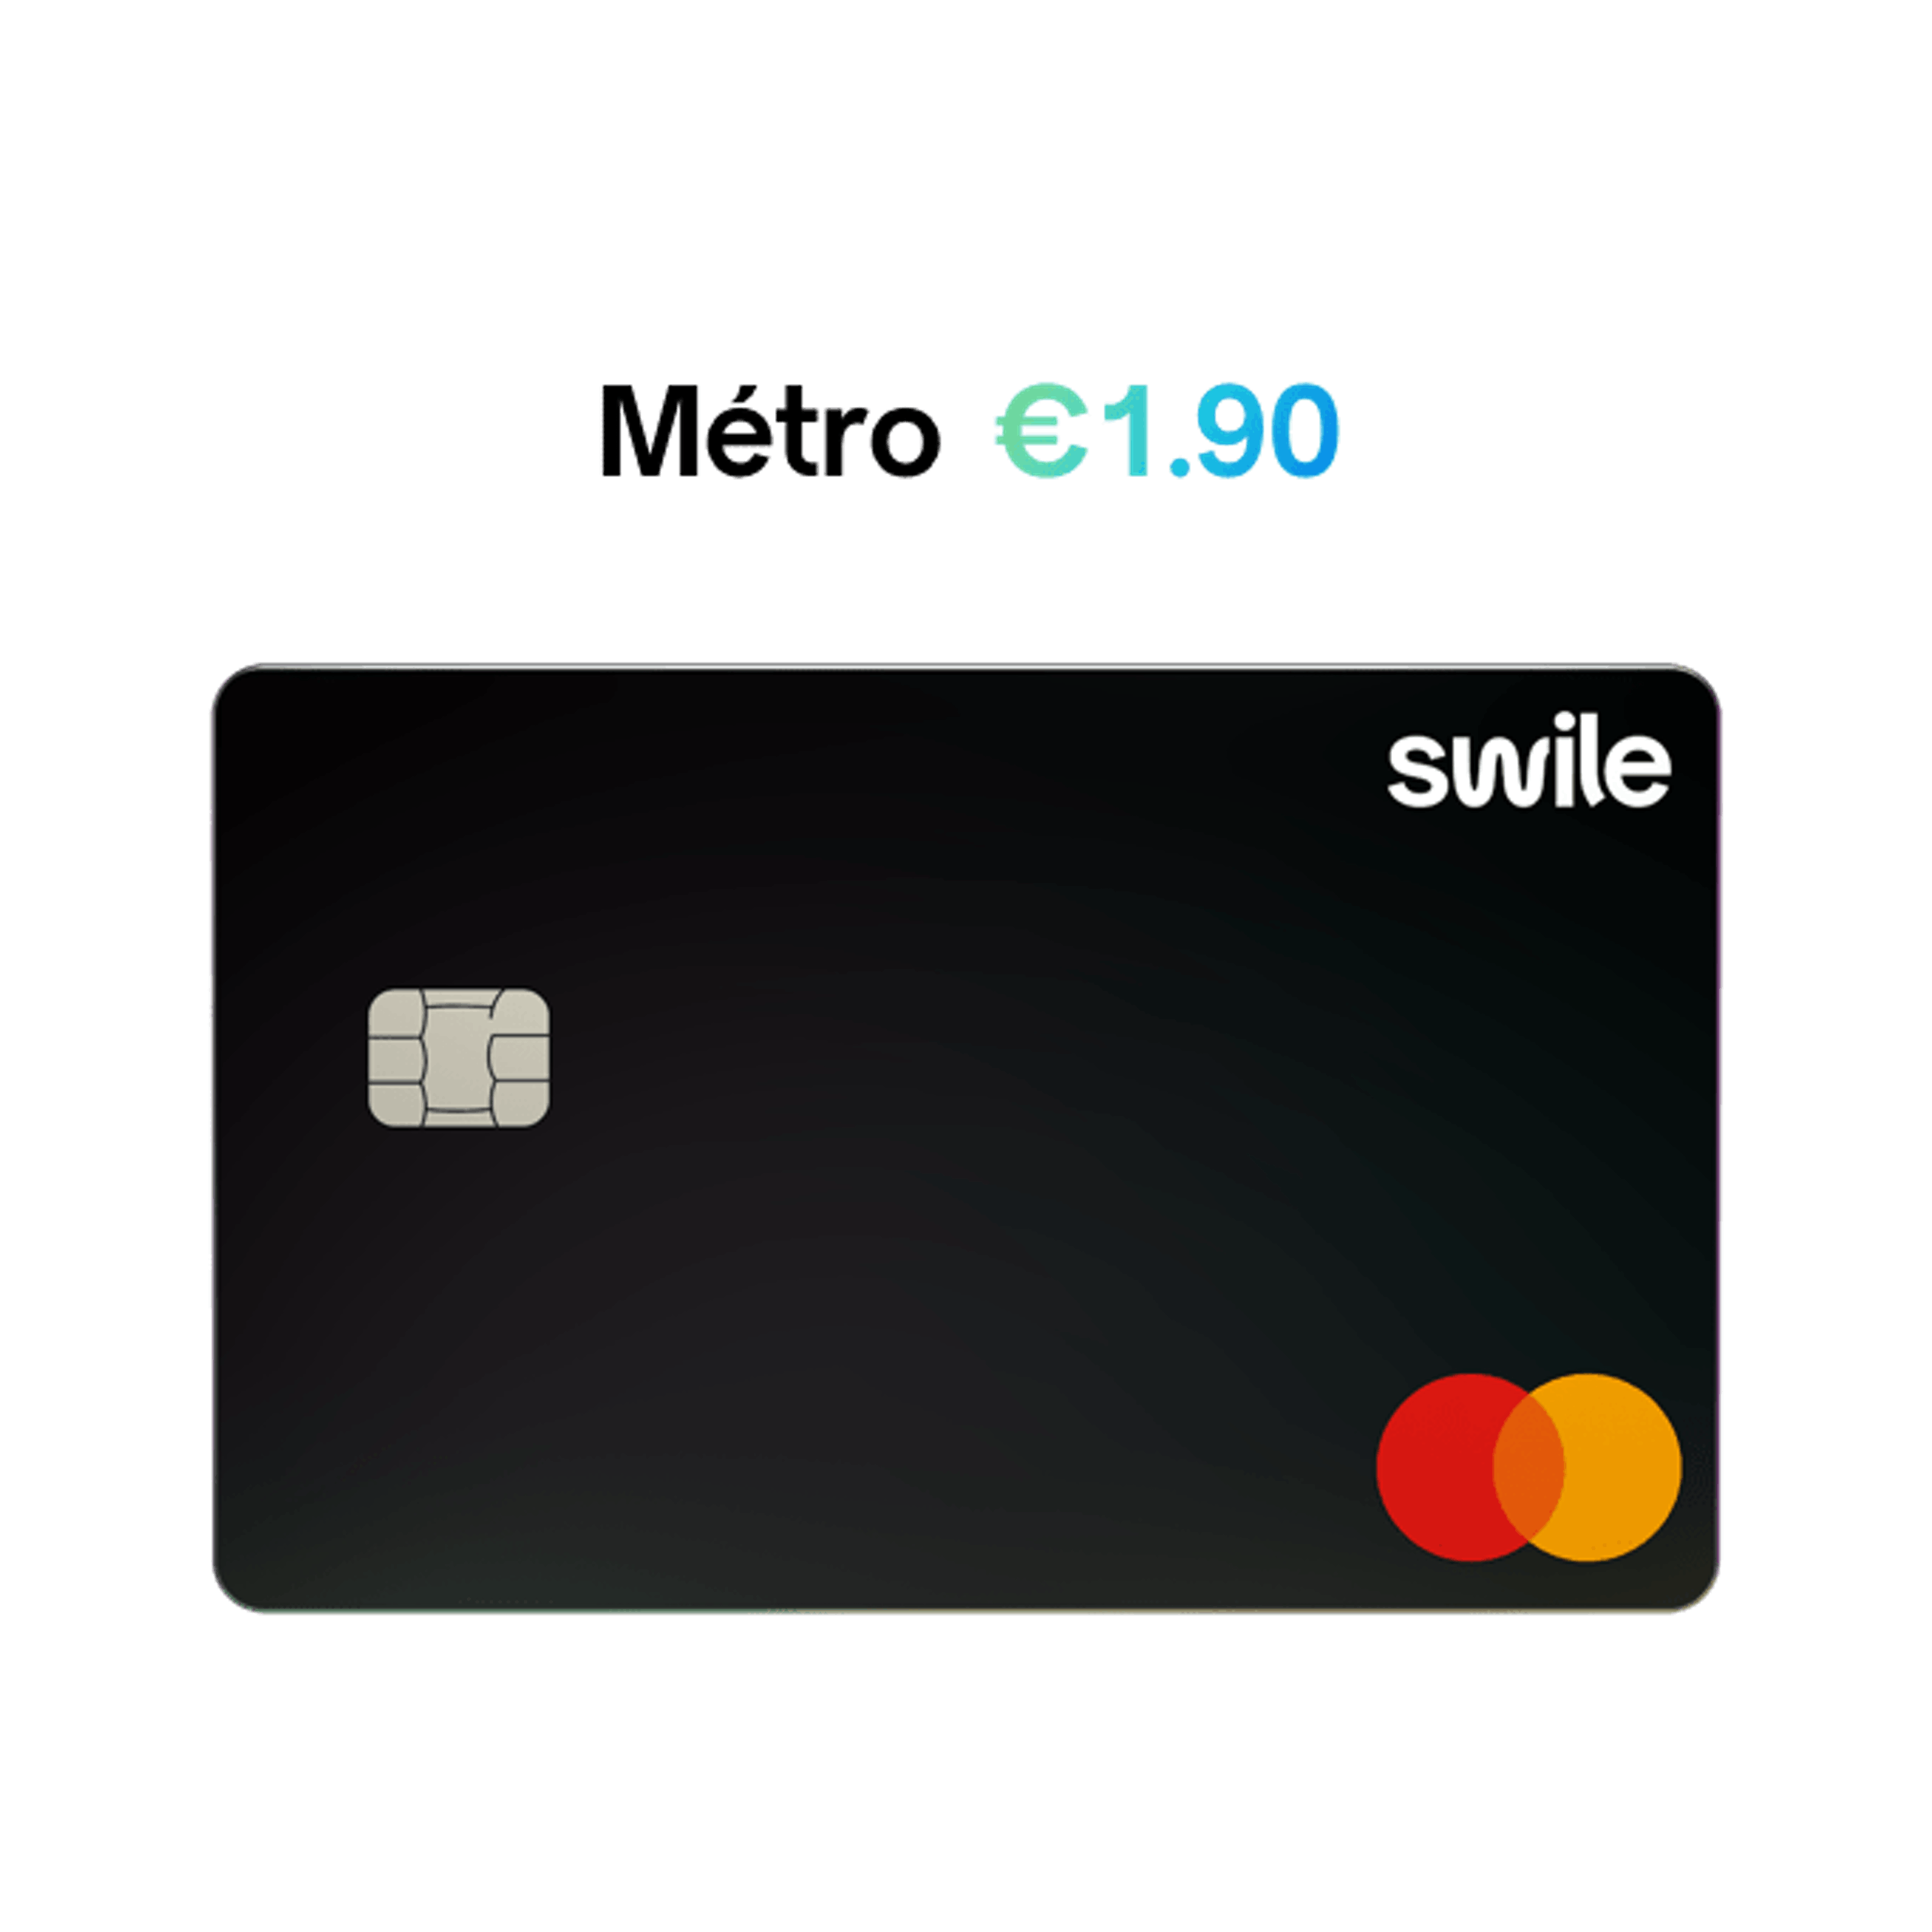 Pay with your Swile Card.